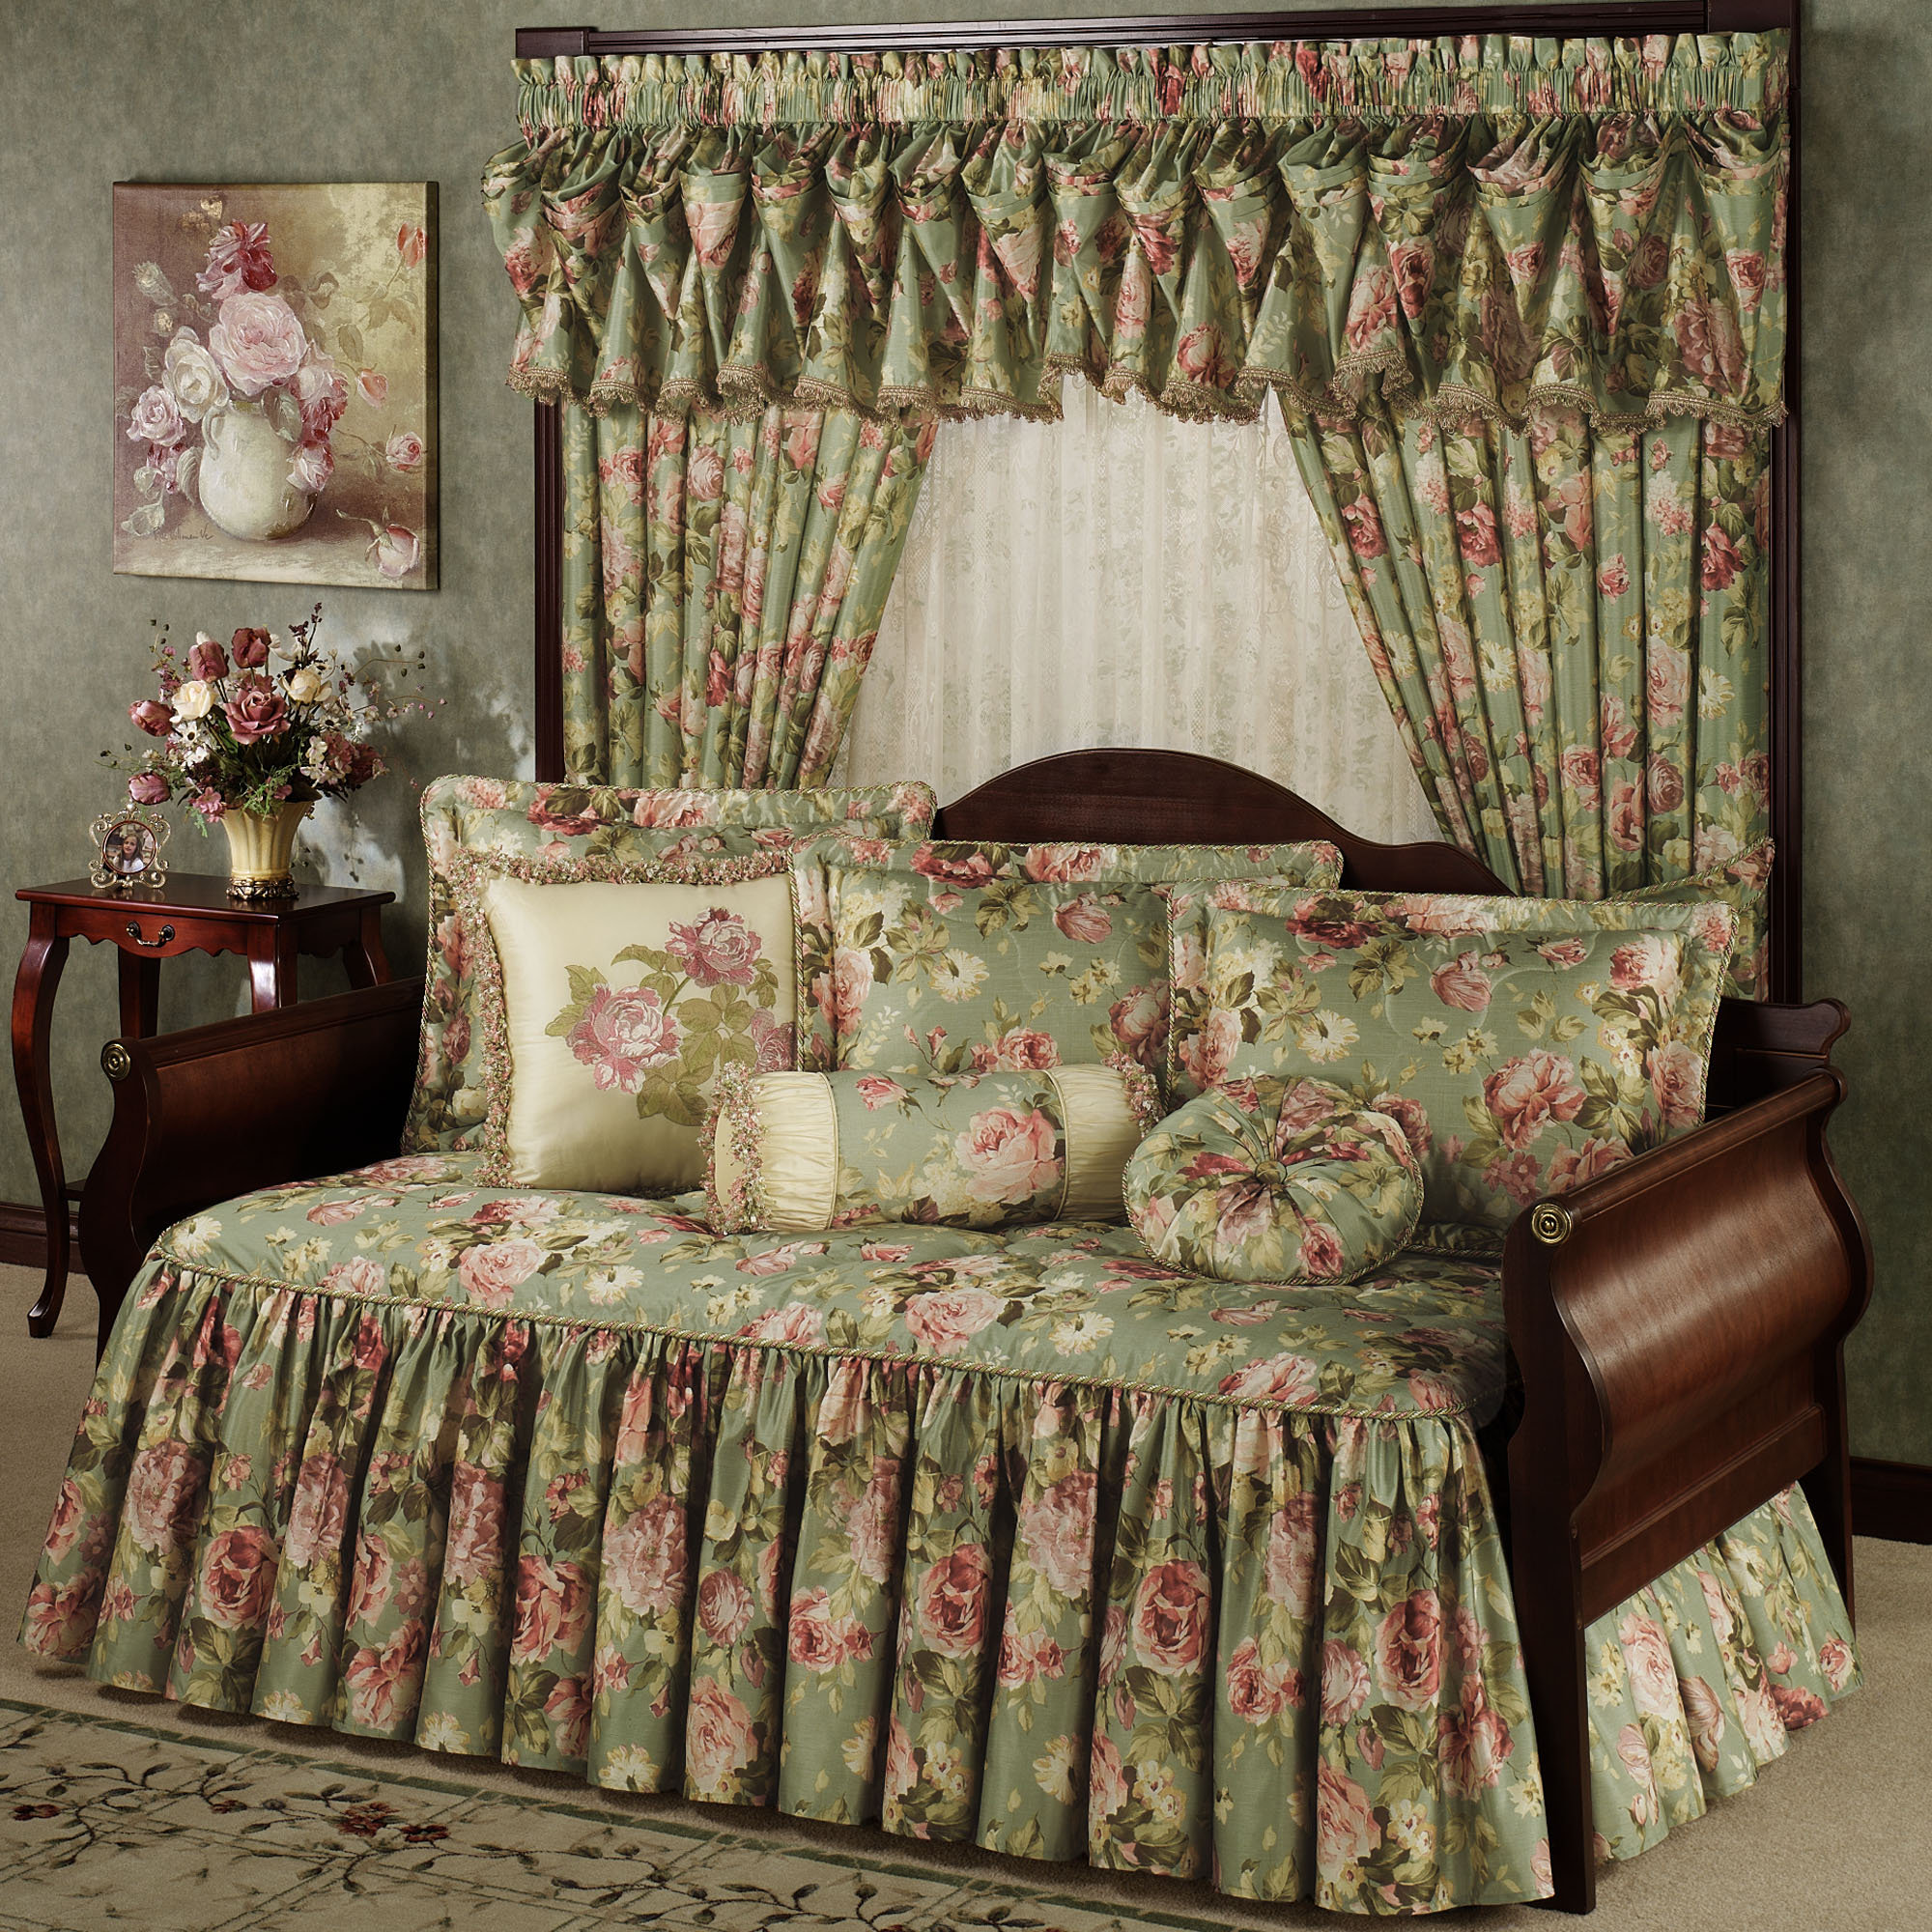 custom daybed bedding sets photo - 3